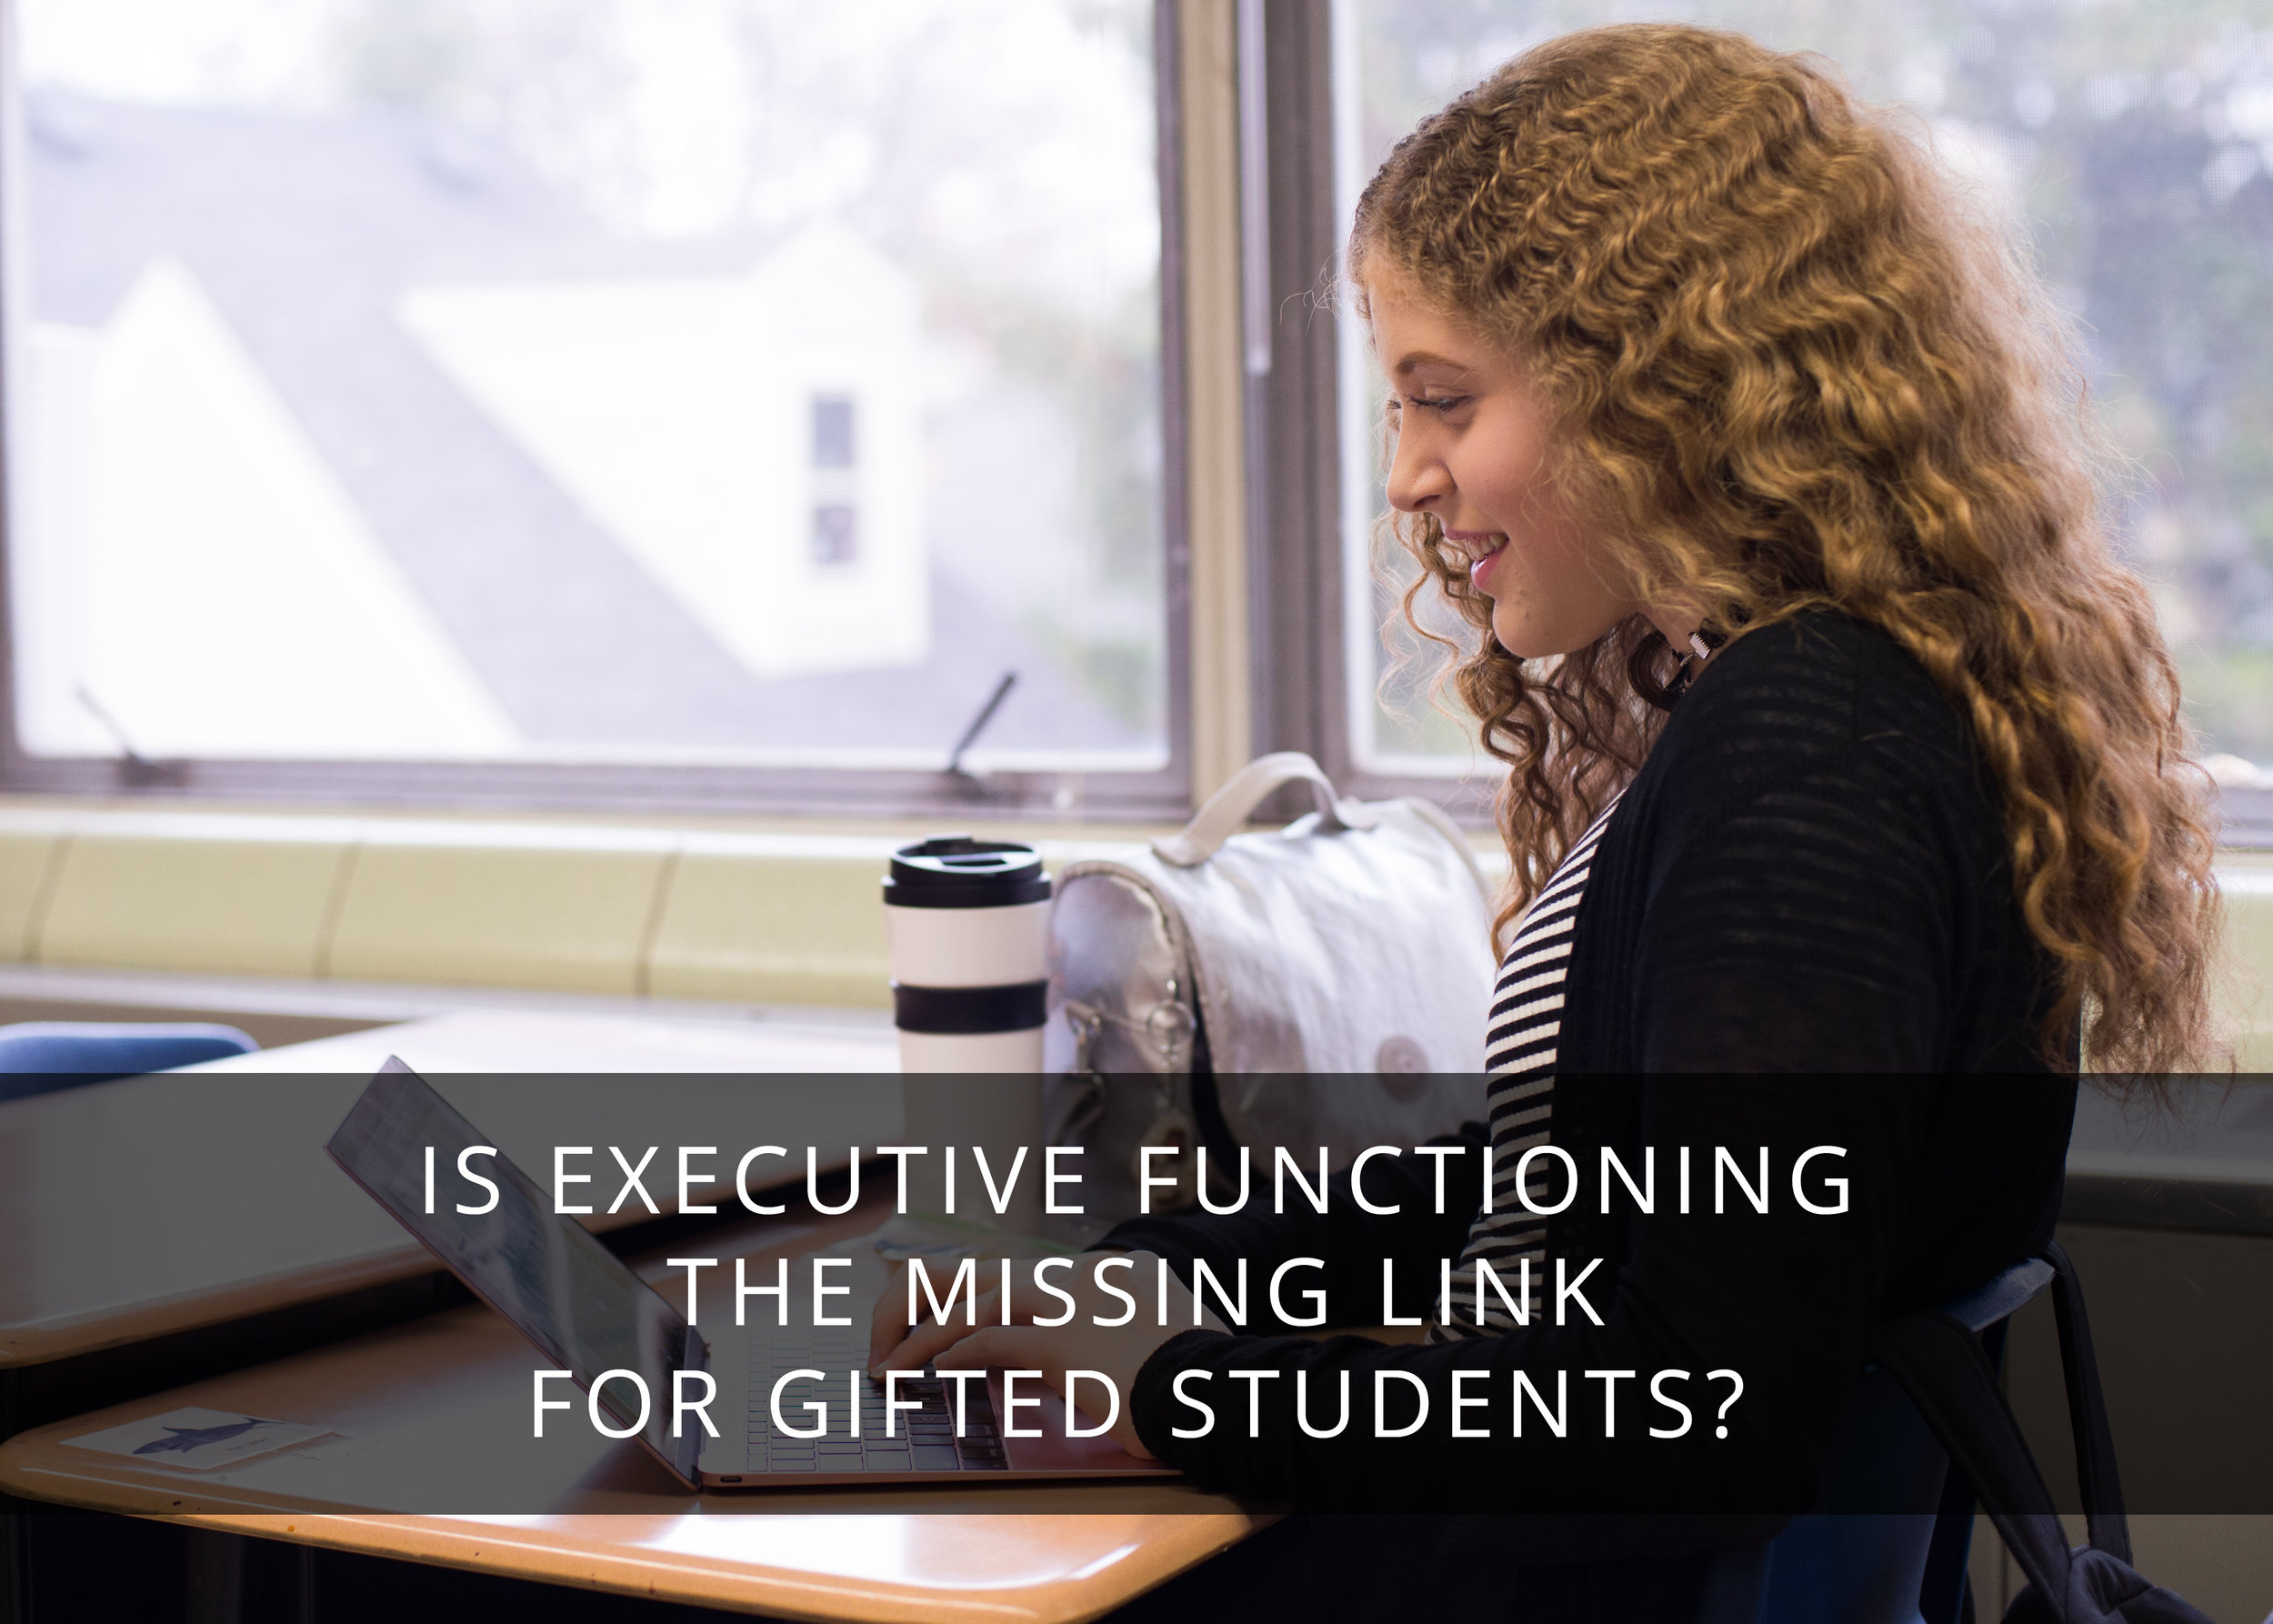 Is Executive Functioning the Missing Link For Gifted Students?